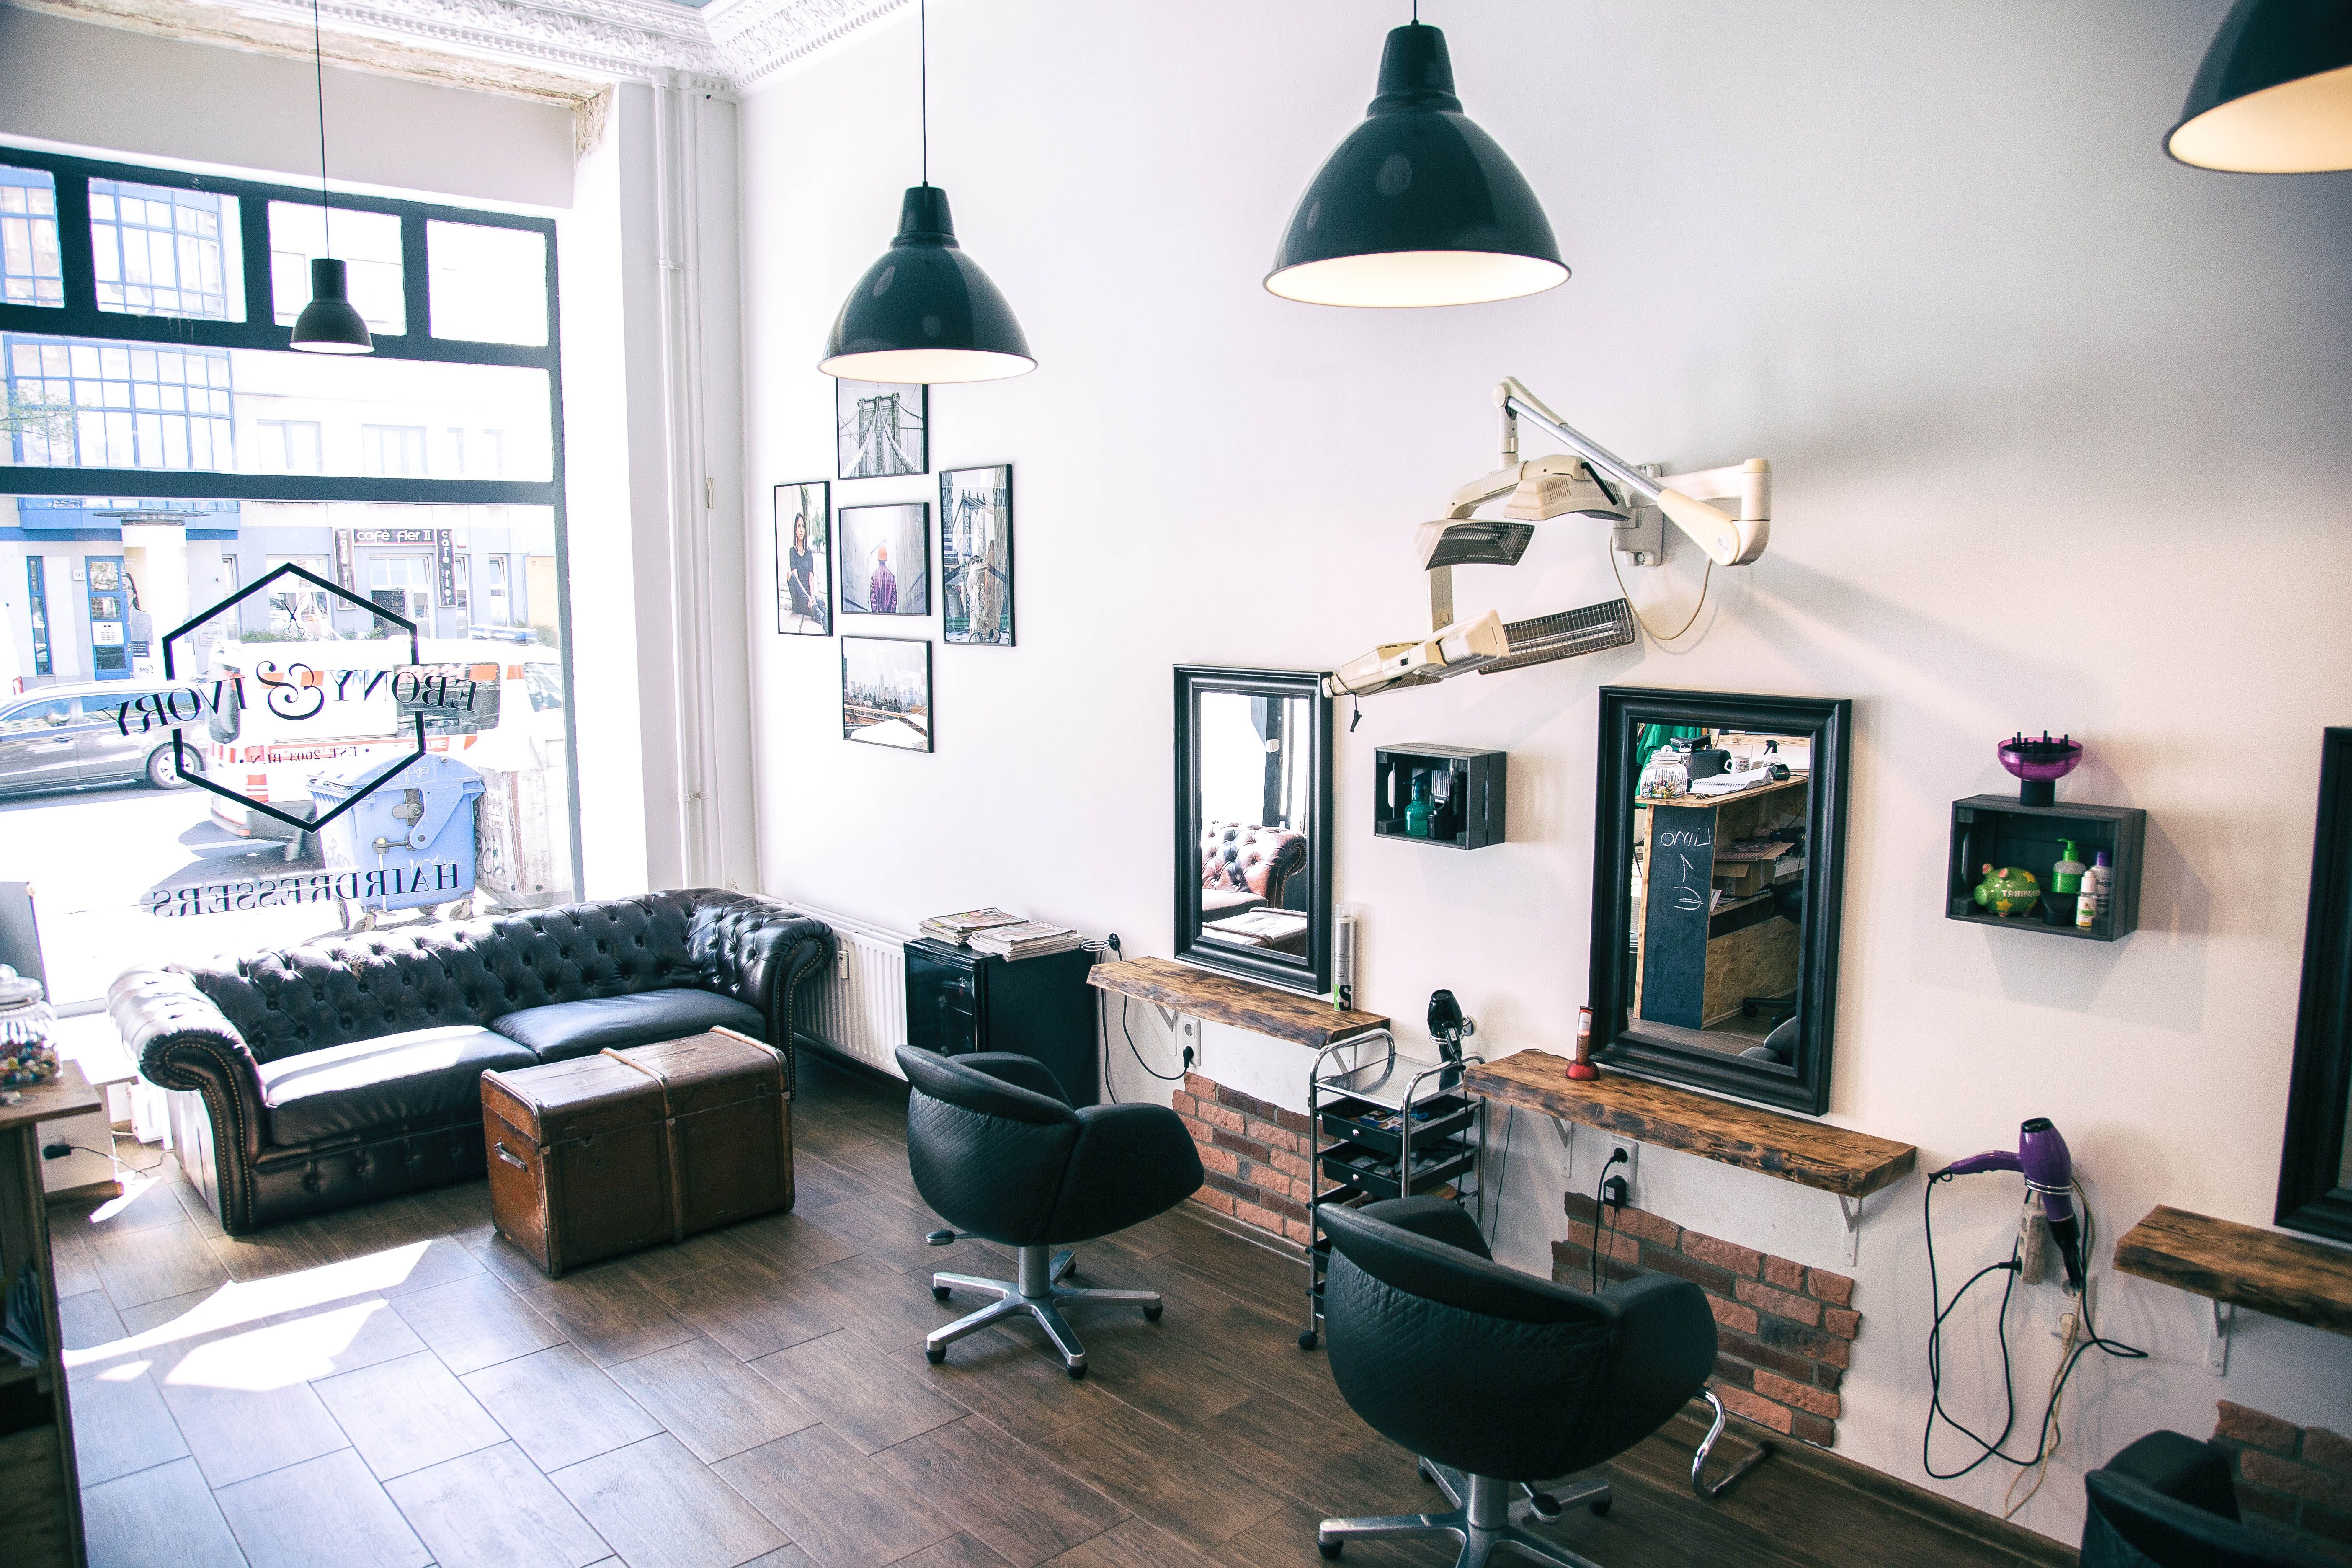 Design Studio Berlin ivory hairdressers bringing the barber culture to